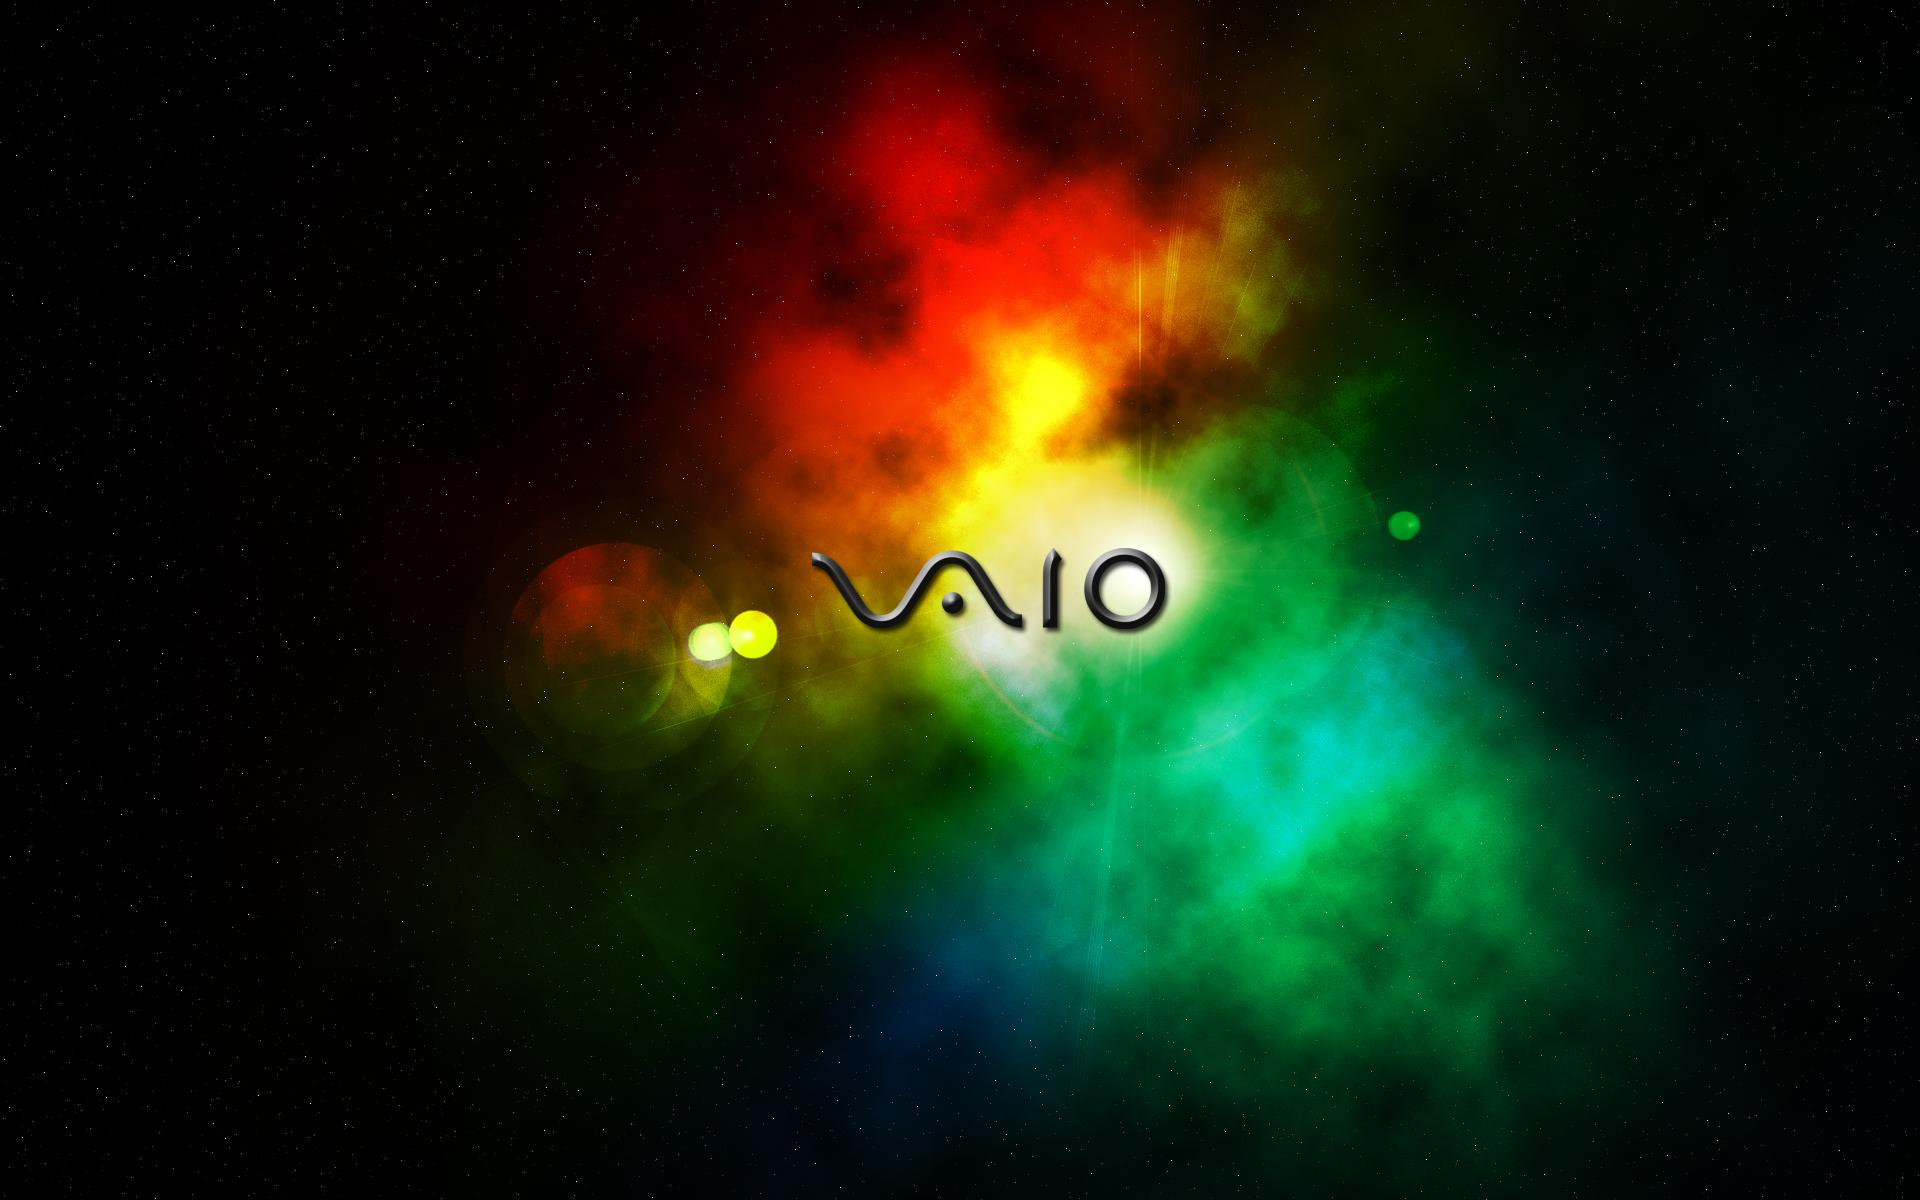 1920x1200 HD Sony Vaio Wallpapers & Vaio Backgrounds For Free Download